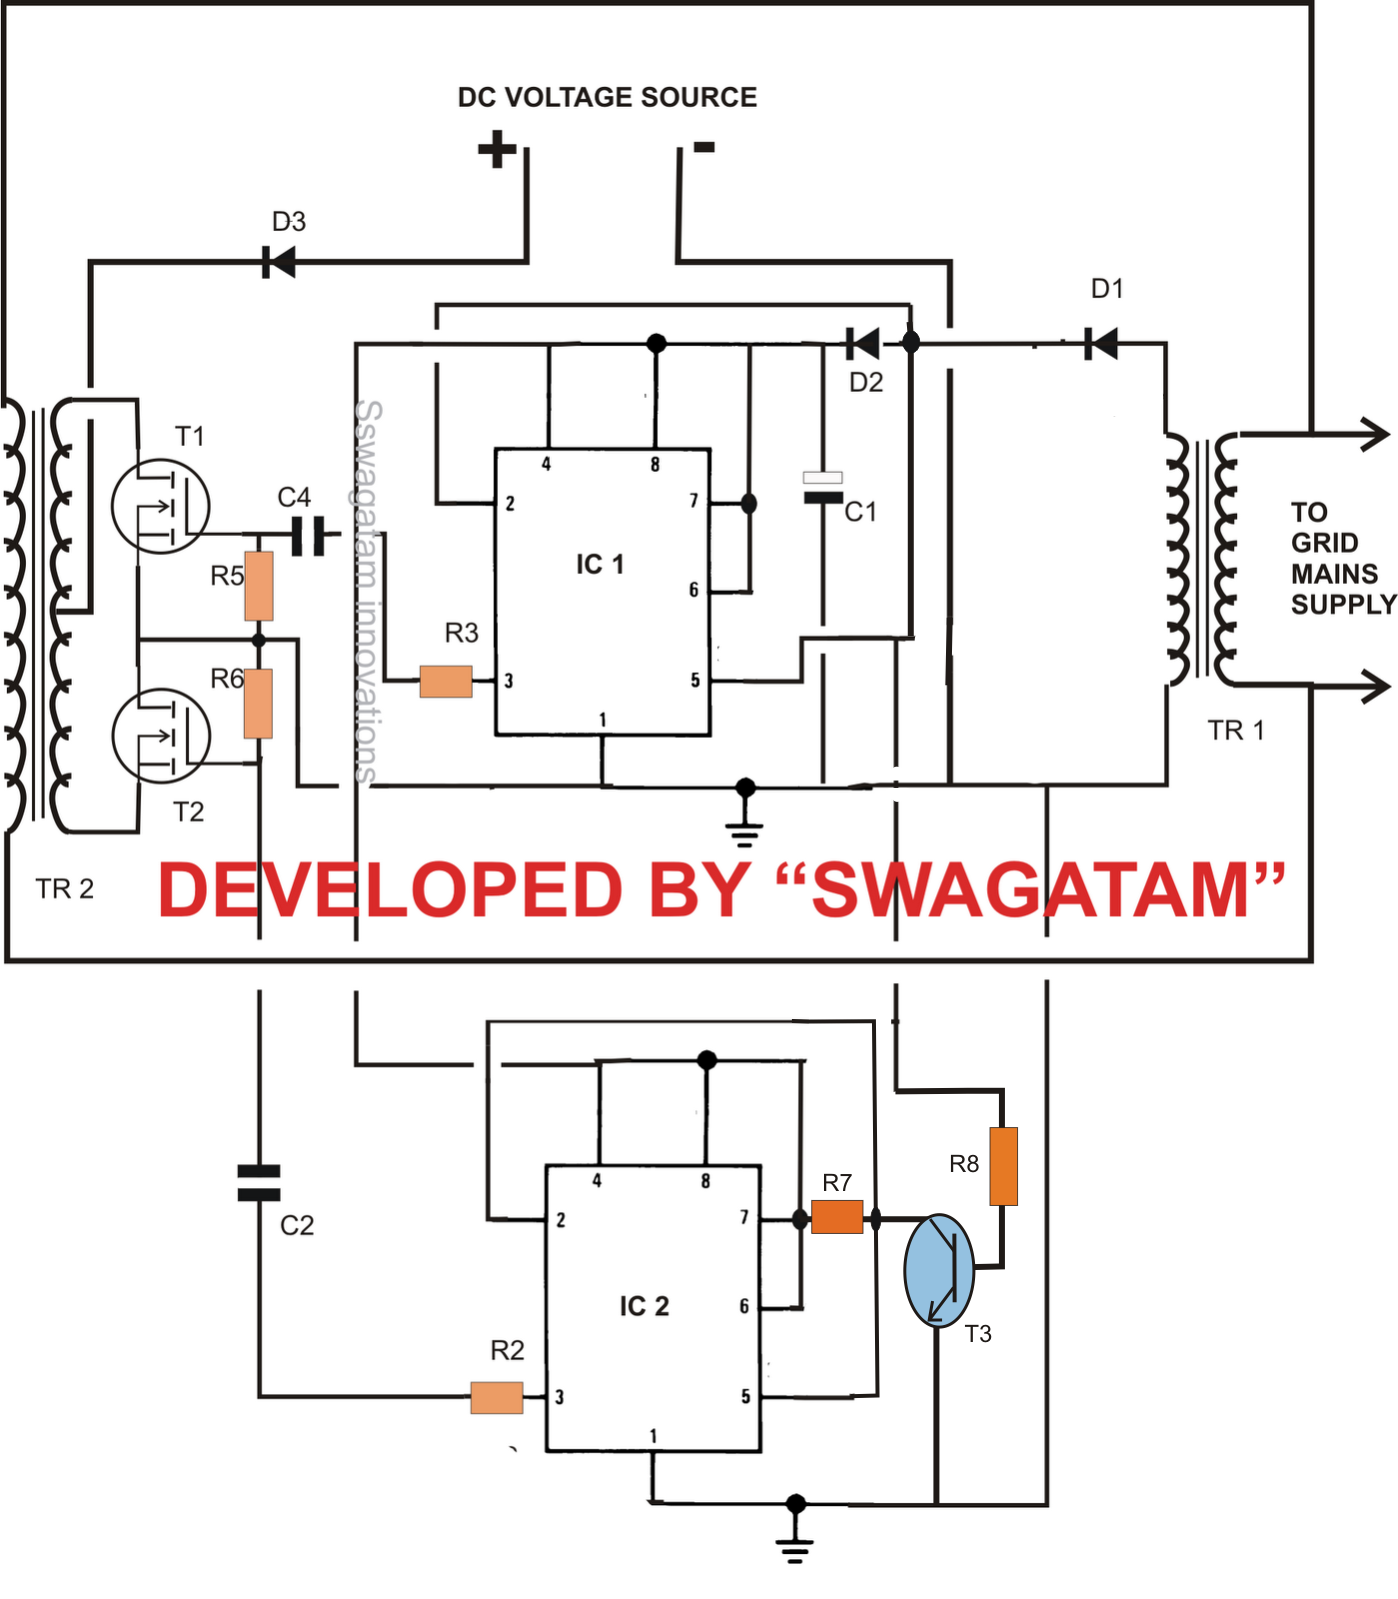 power inverter wiring diagram designing a grid tie inverter circuit electronic circuit projects designing a grid tie inverter circuit